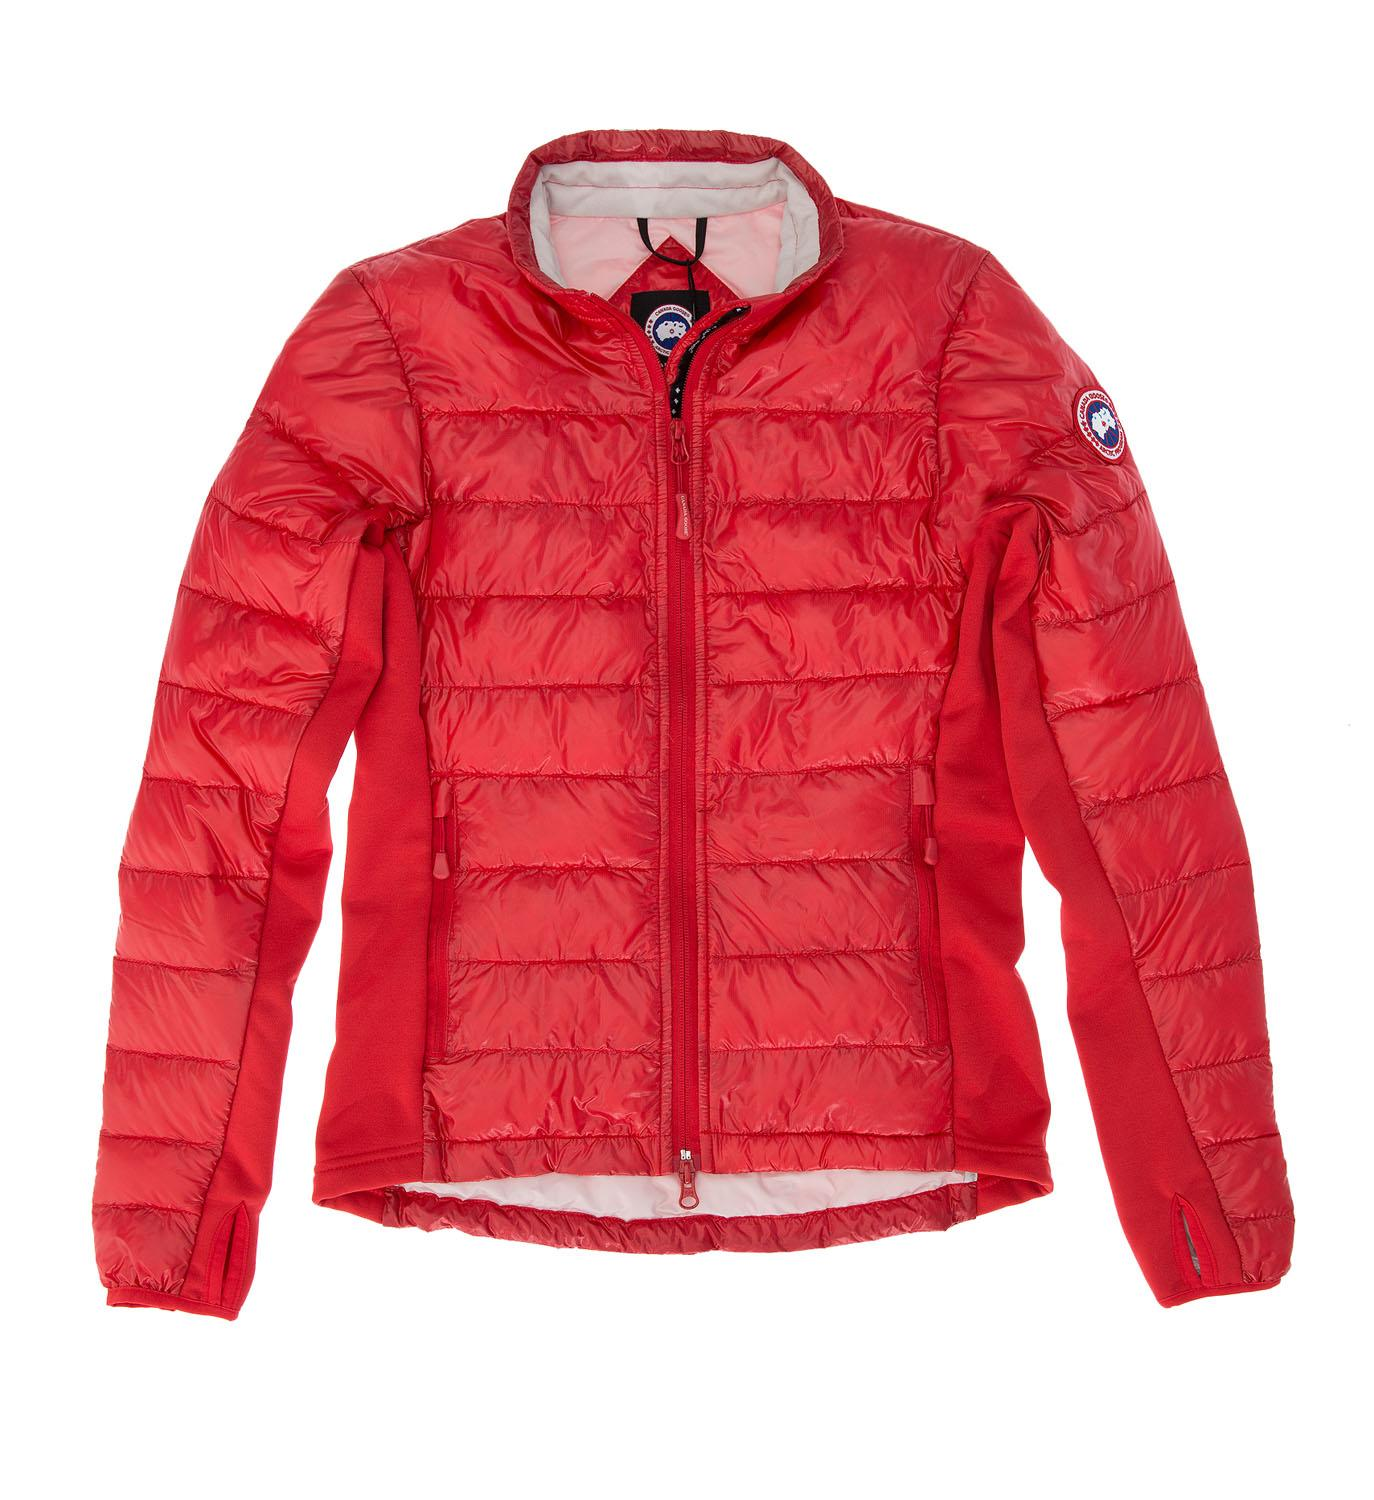 Canada goose Women's Hybridge Lite Jacket in Red | Lyst - photo#17